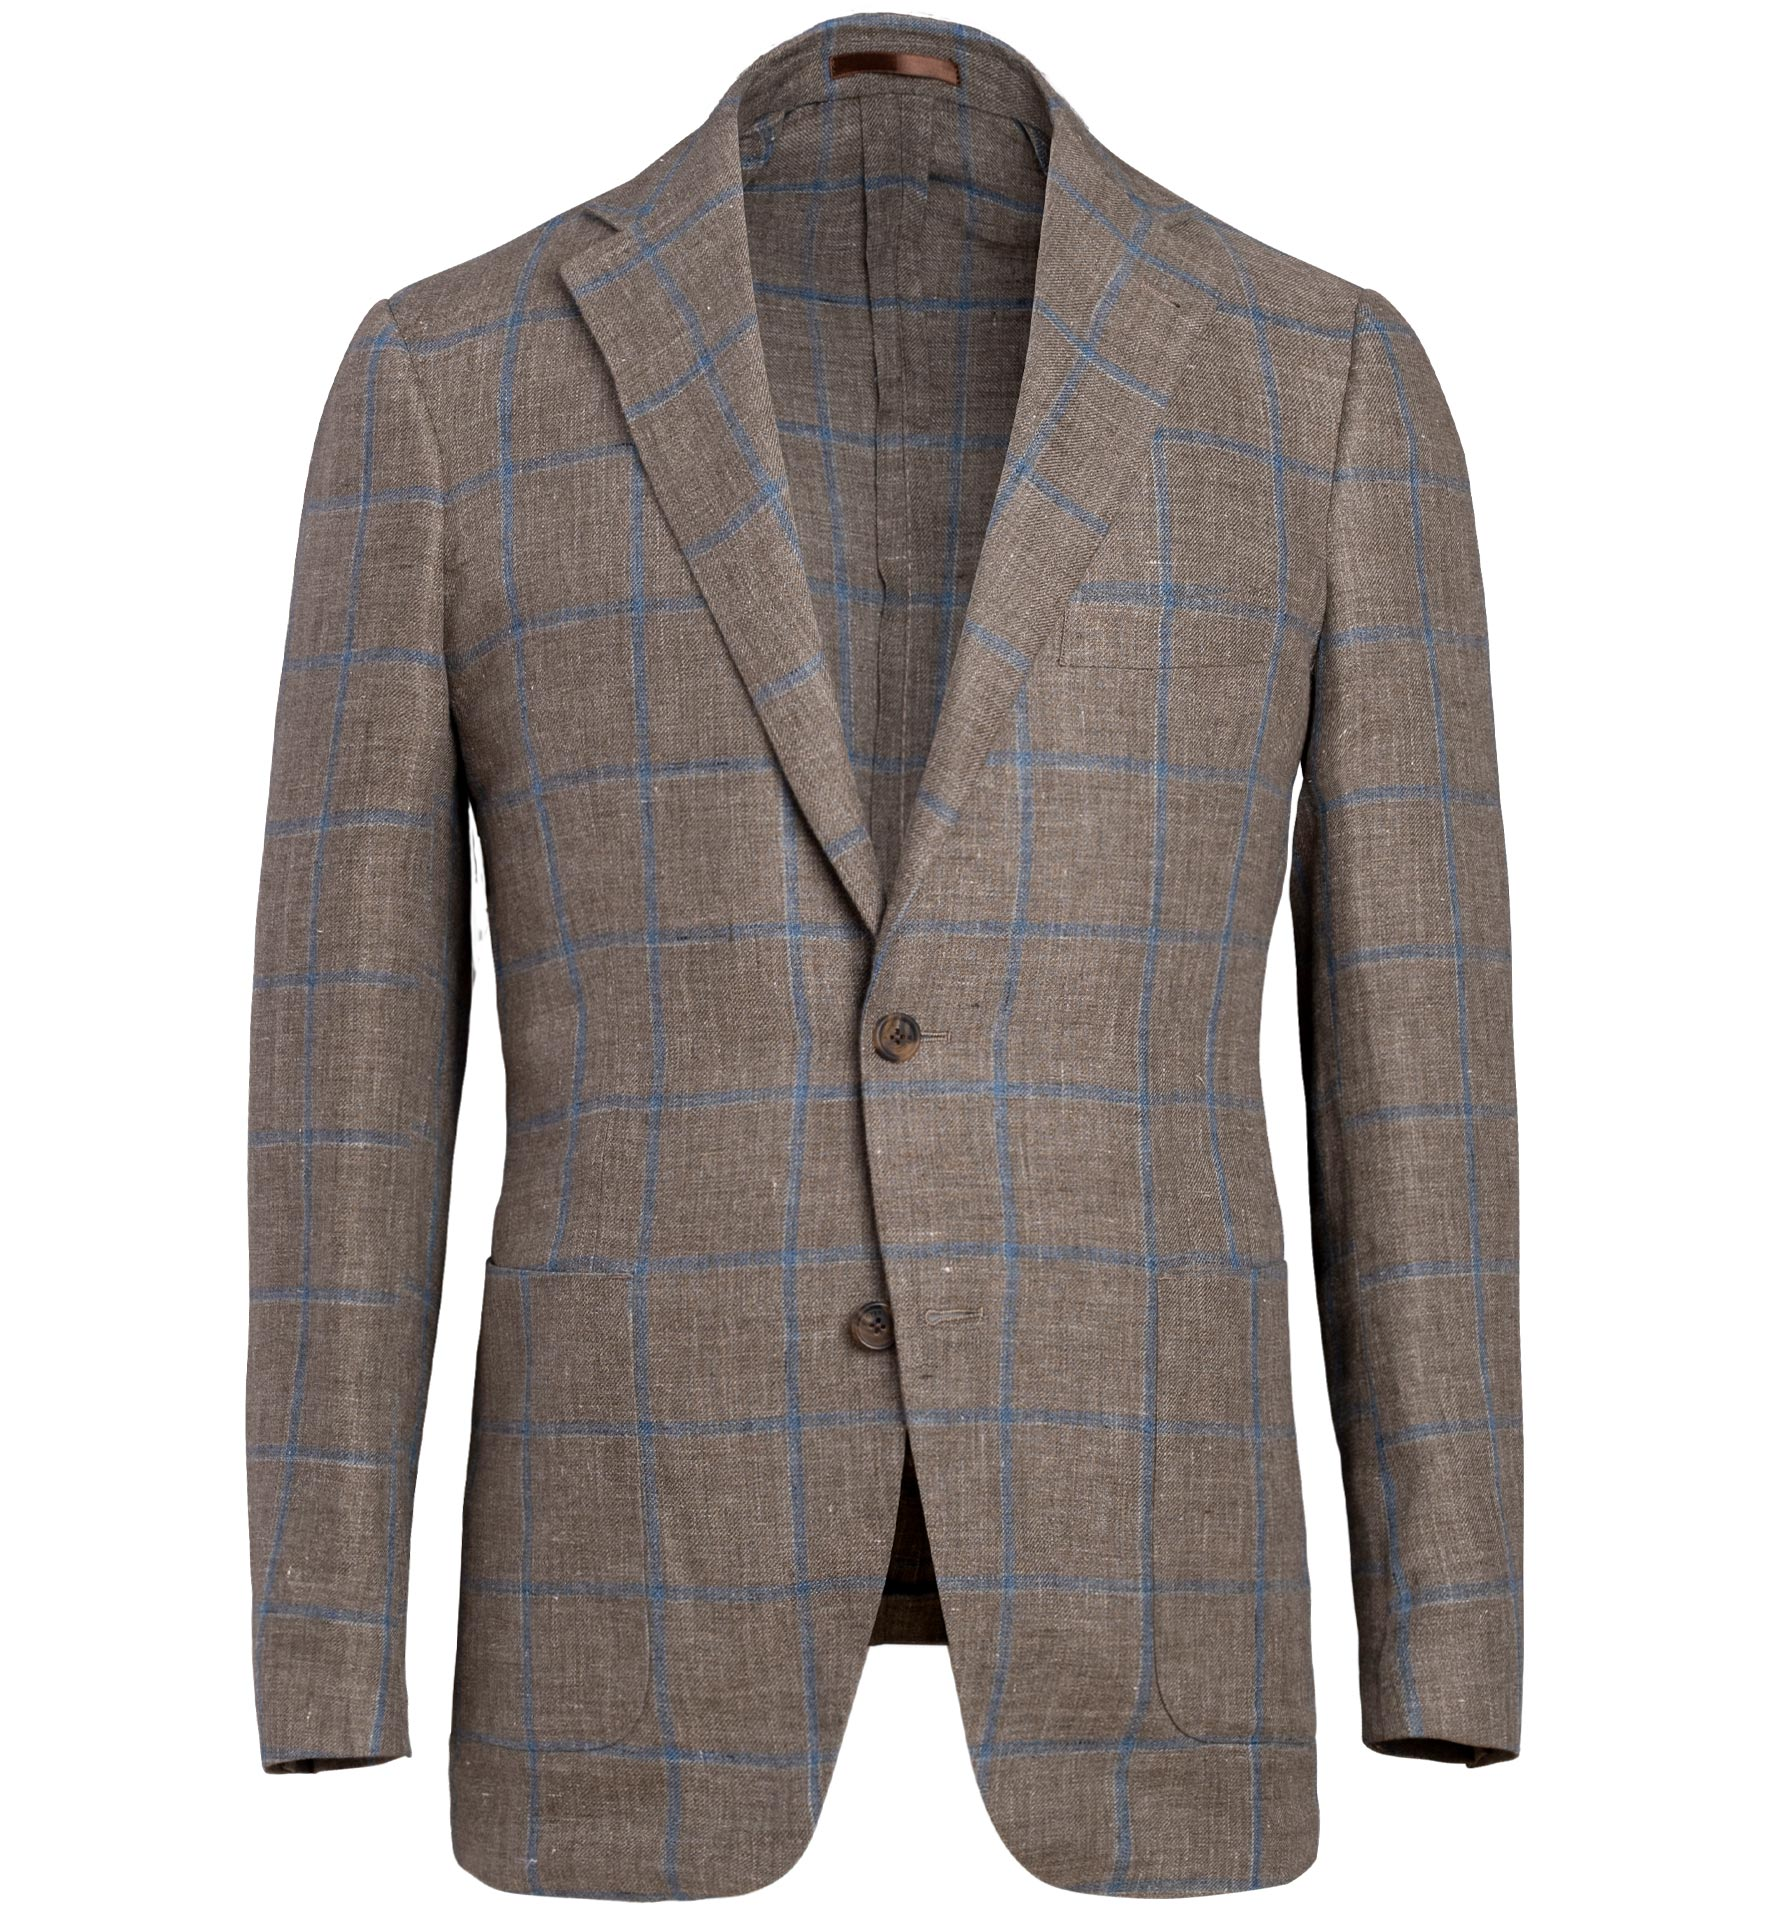 Zoom Image of Bedford Brown and Blue Windowpane Linen Jacket